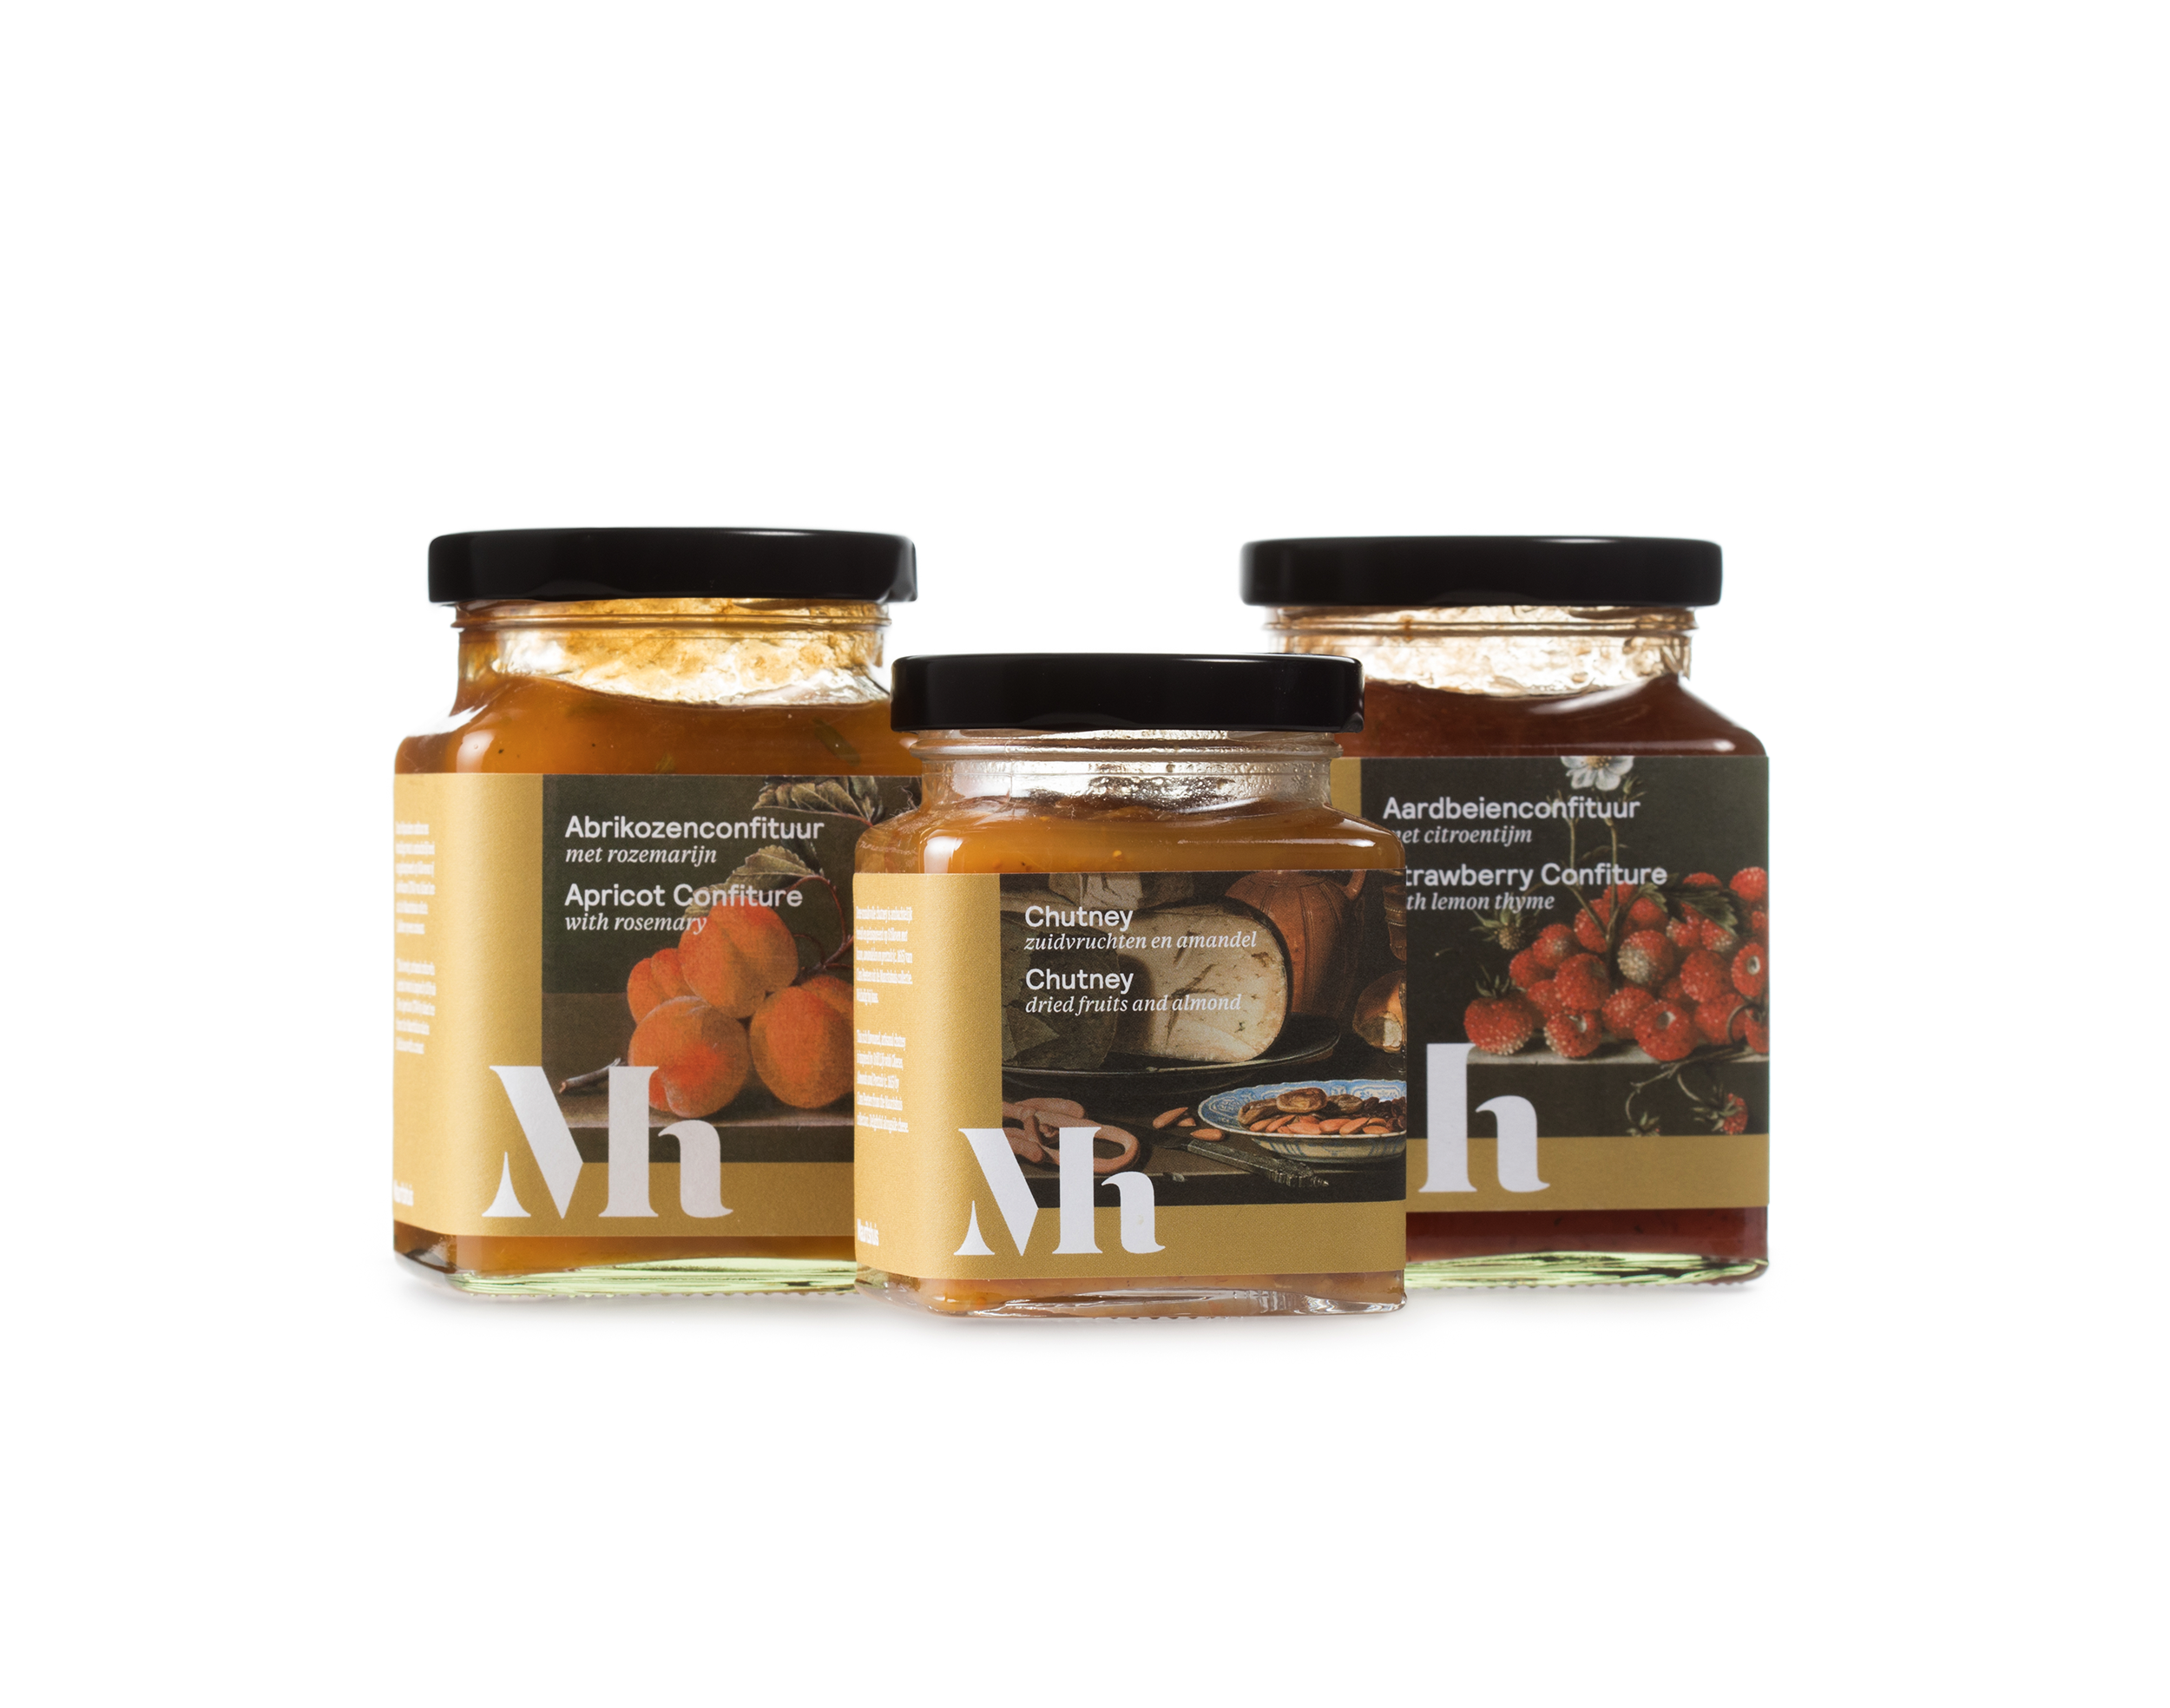 Mauritshuis delicatessen, food concept, verpakkingsontwerp, packaging design, branding